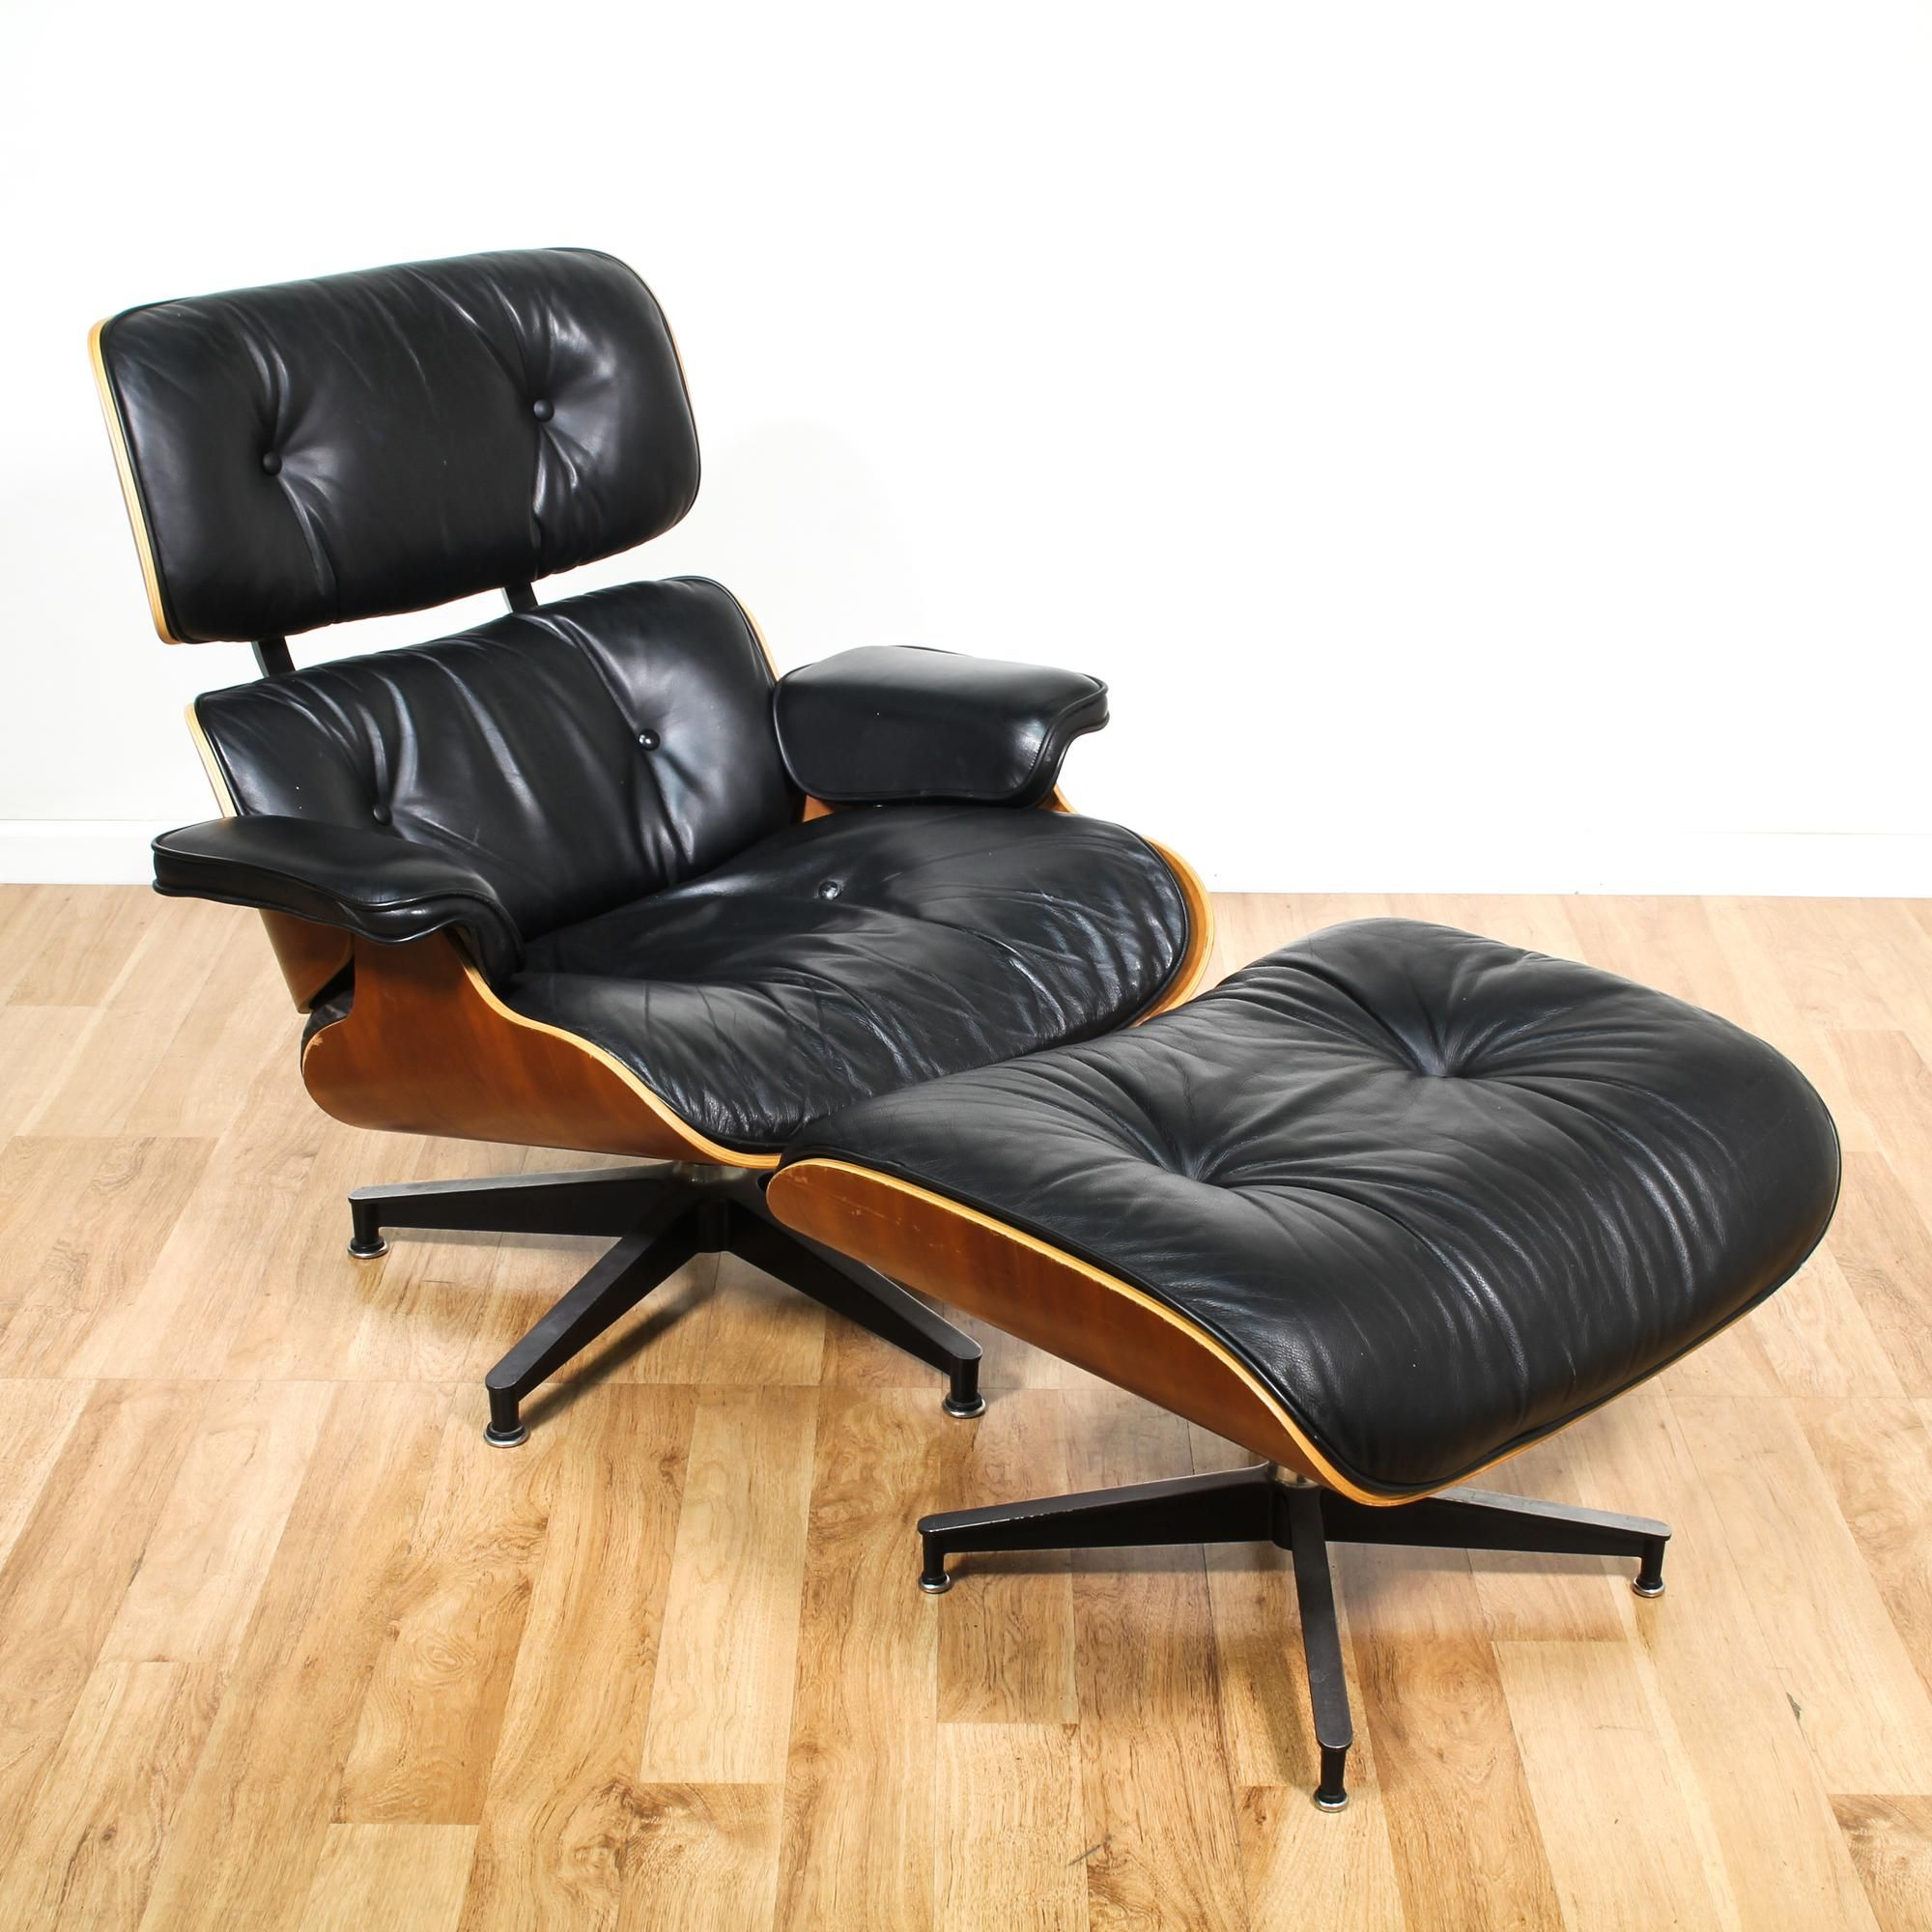 Eames for herman miller lounge chair eames for herman miller lounge chair and ottoman are upholstered in a durable shiny black leather